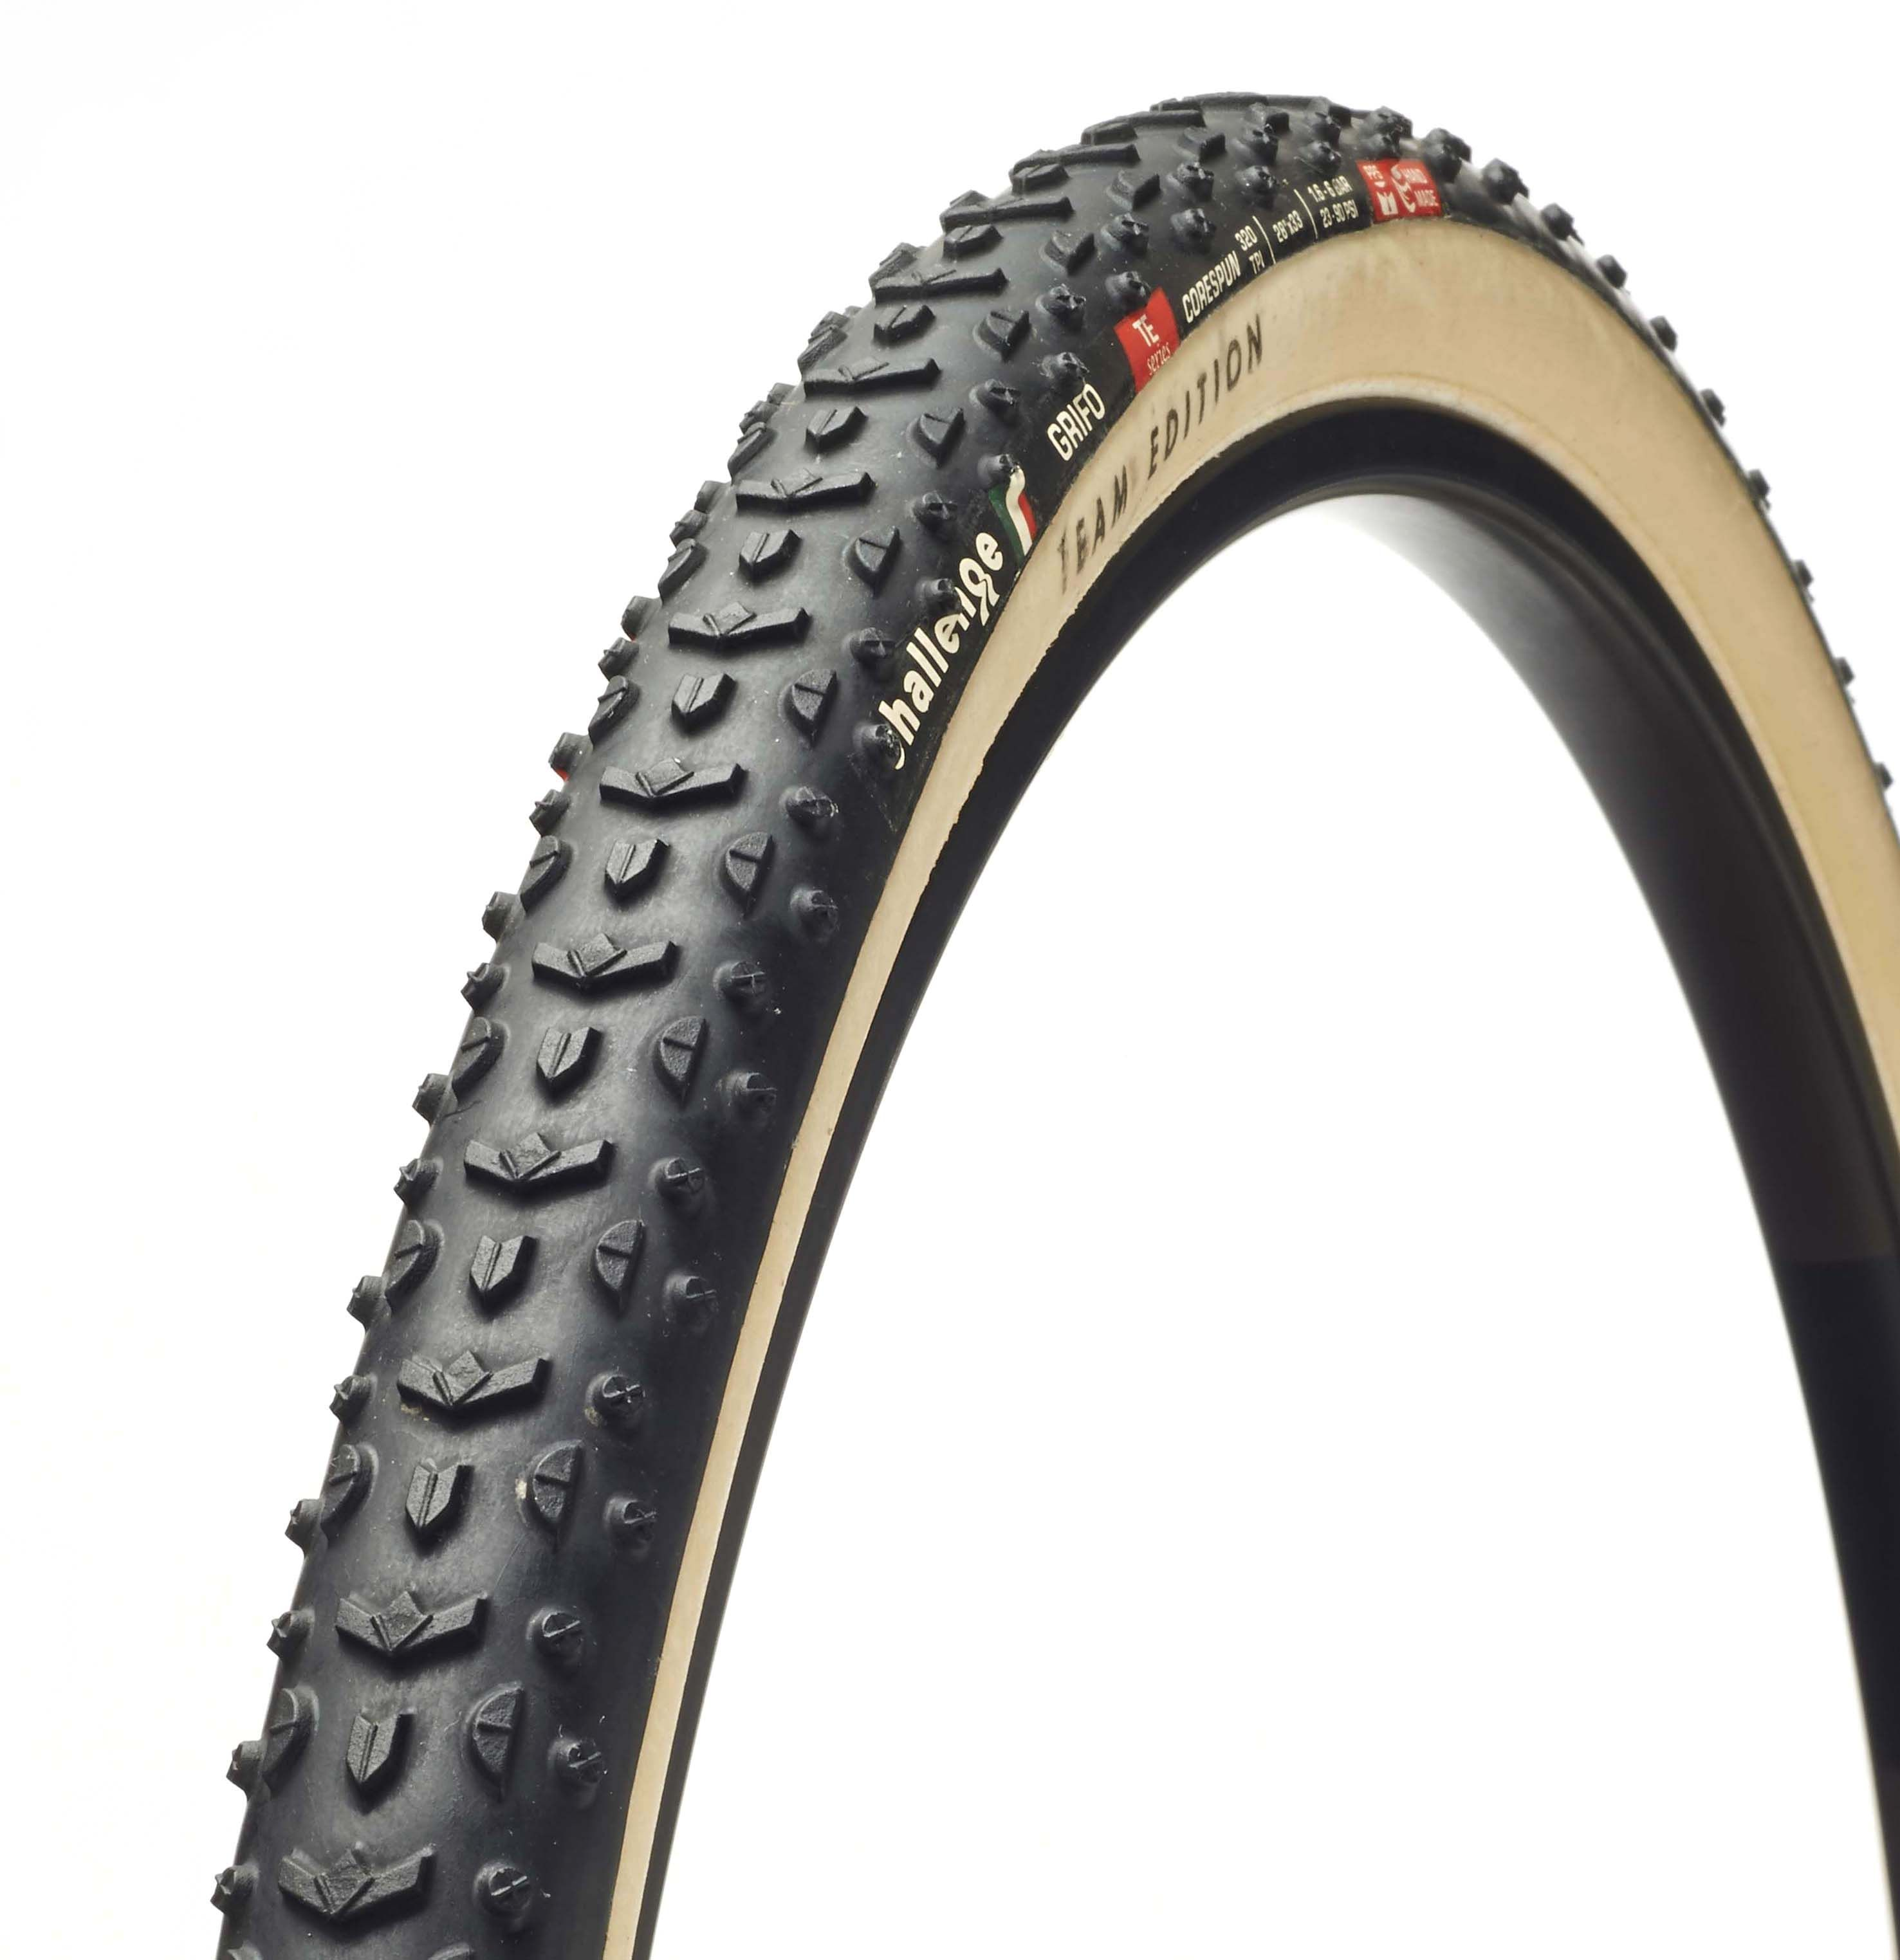 Grifo T.E. 33 | BICYCLE PARTS&ACCES | Pinterest | MTB and Bicycling